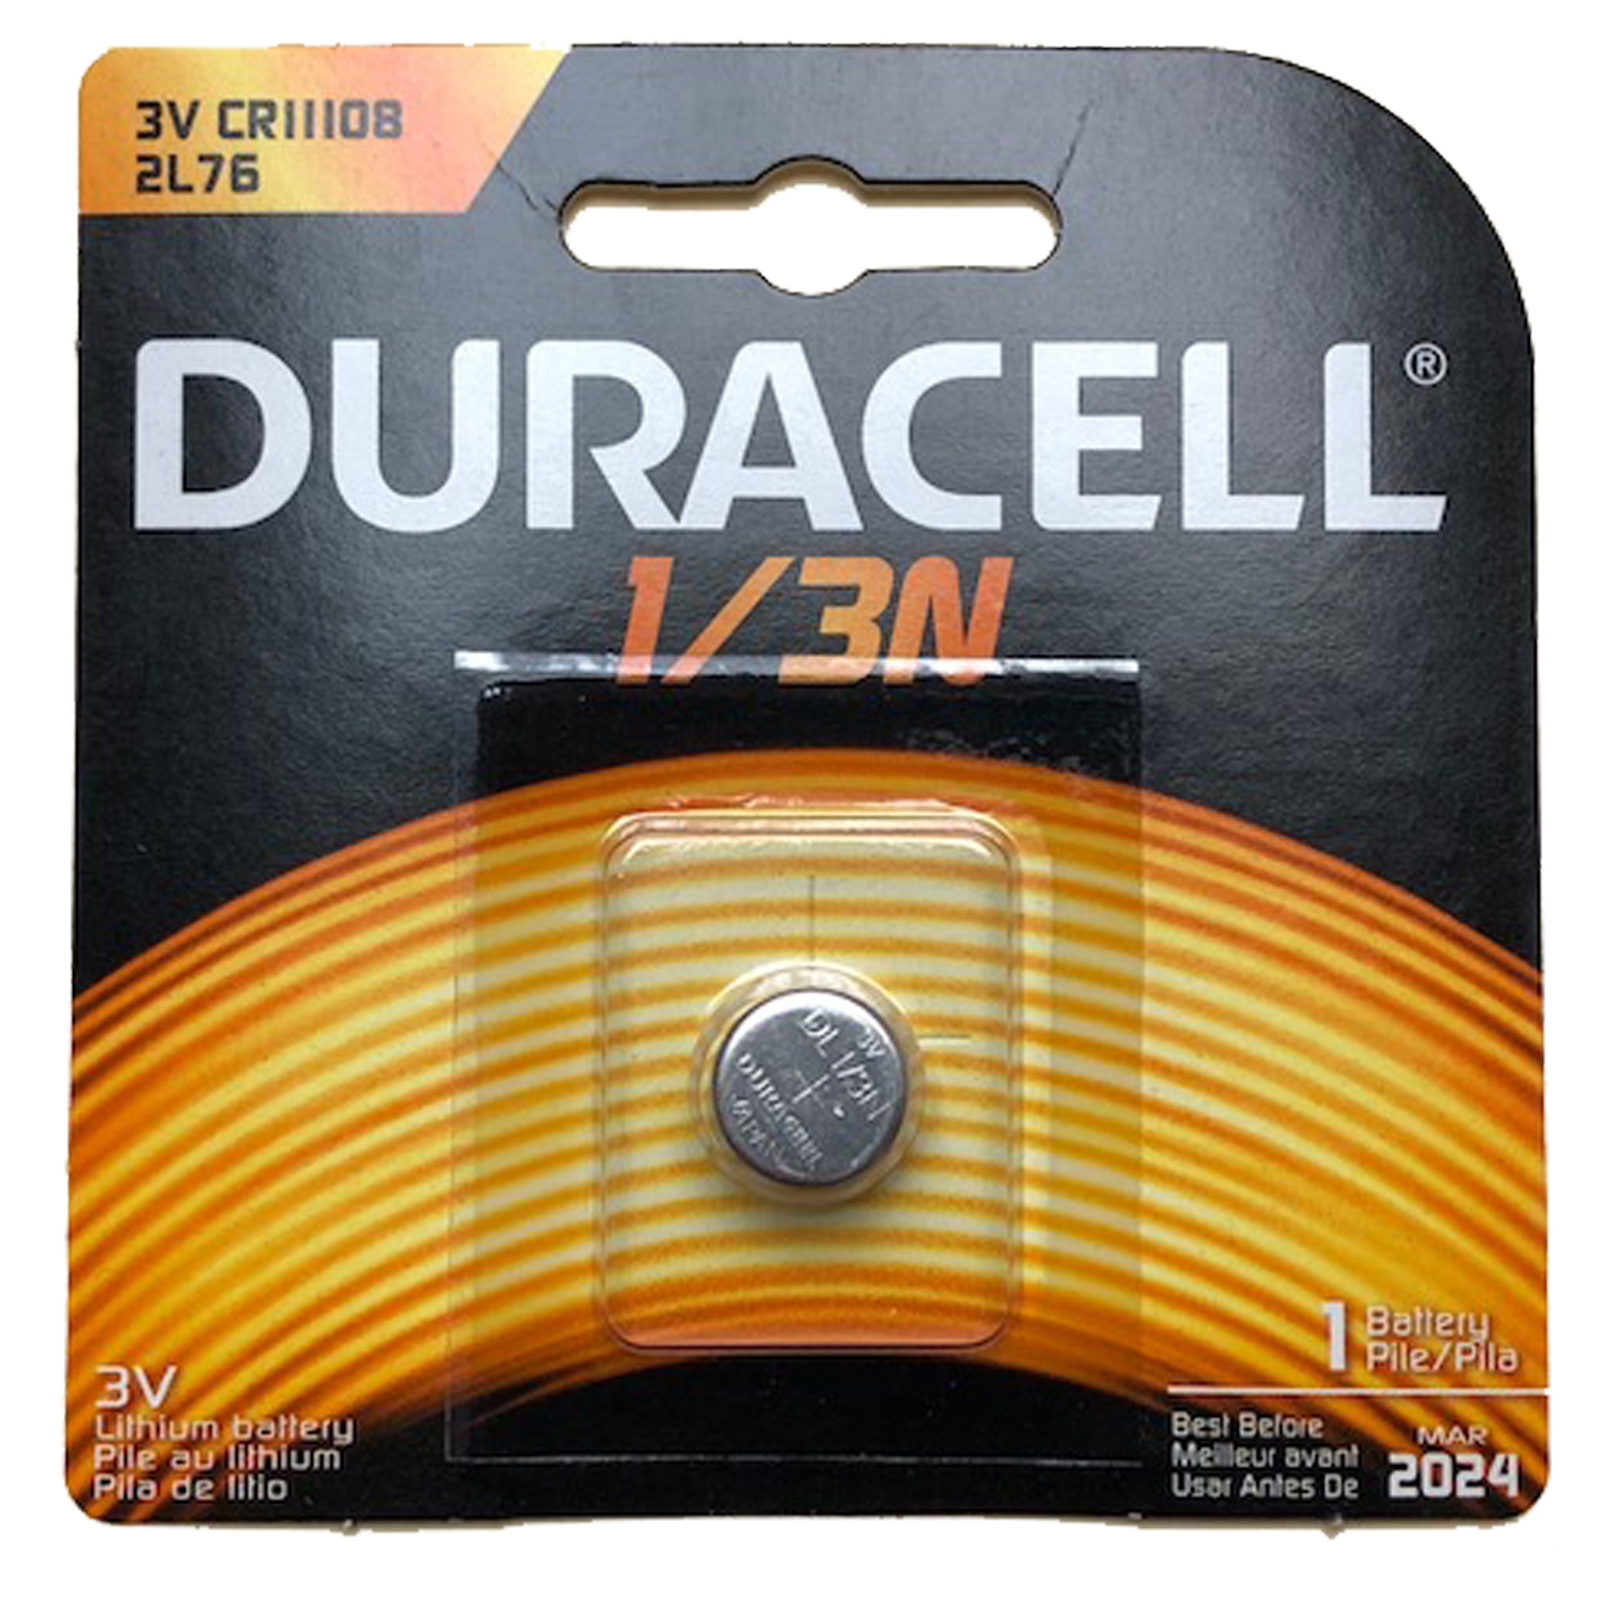 Duracell Photo DL CR1/3N 2L76 3V Lithium Battery Replaces 1/3N, DL1/3N, DL1/3NB